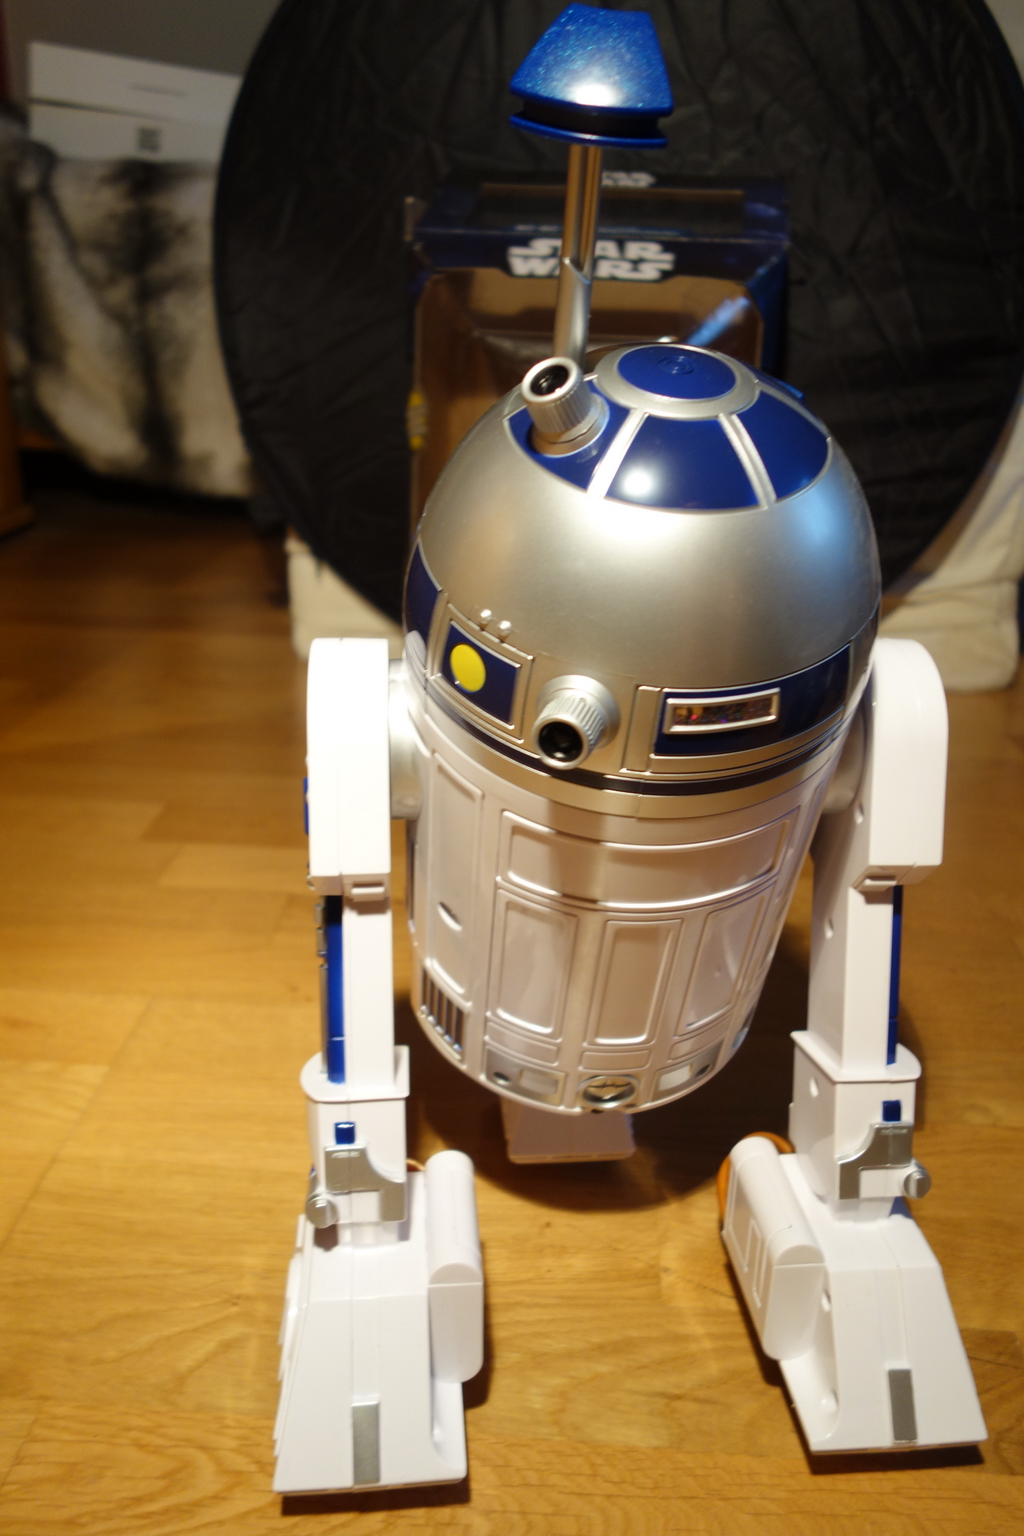 r2-d2-droid-interactive-2